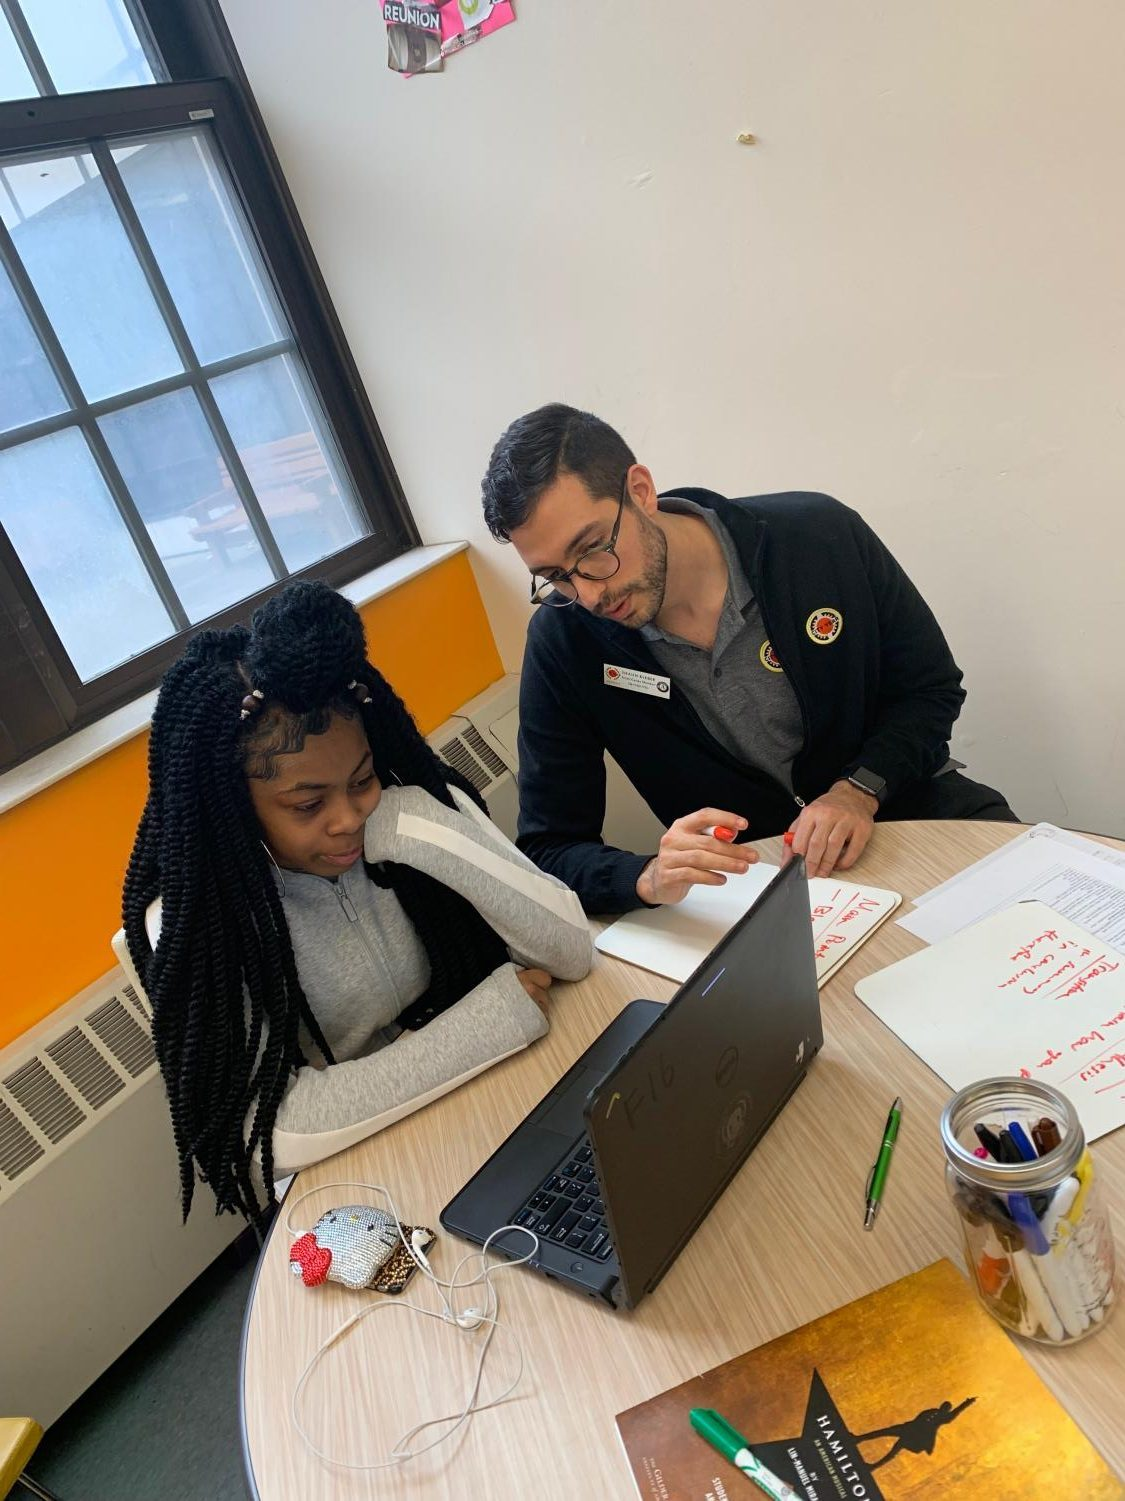 STRIVE FOR SUCCESS: Grady alum Shaun Kleber works with one of his students in Detroit for City Year. Kleber hopes to use this to jump-start his career into education.